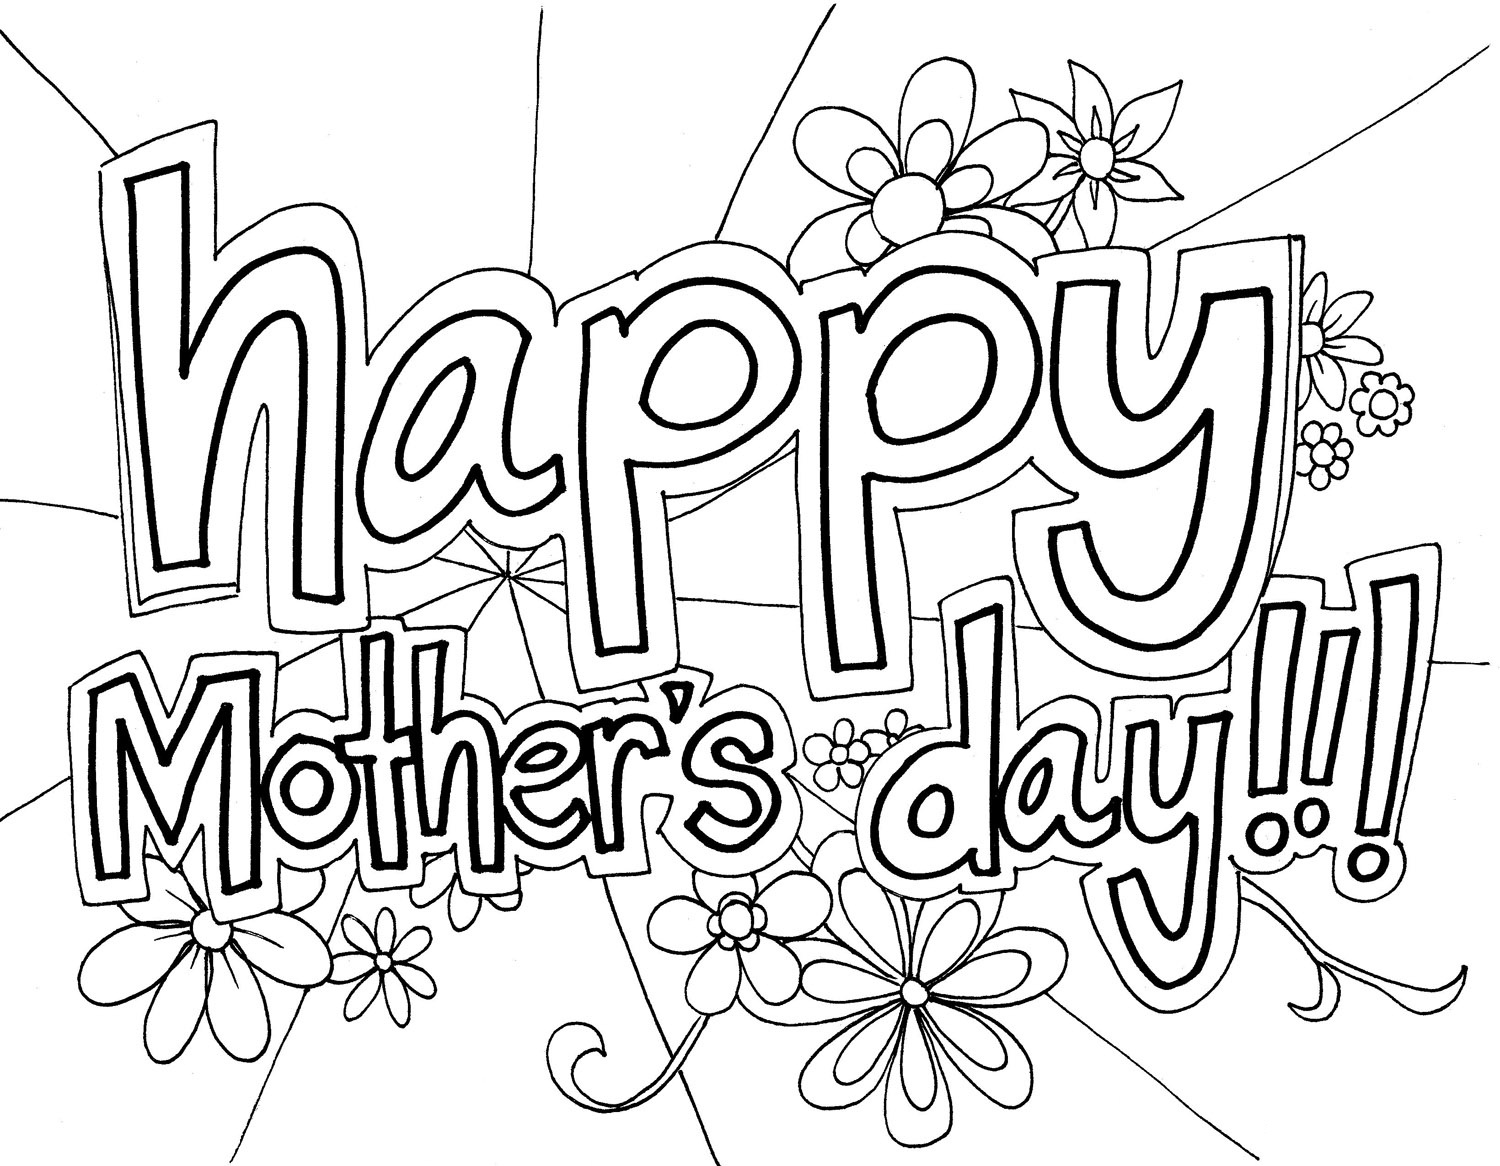 card coloring pages - free printable mothers day coloring pages for kids